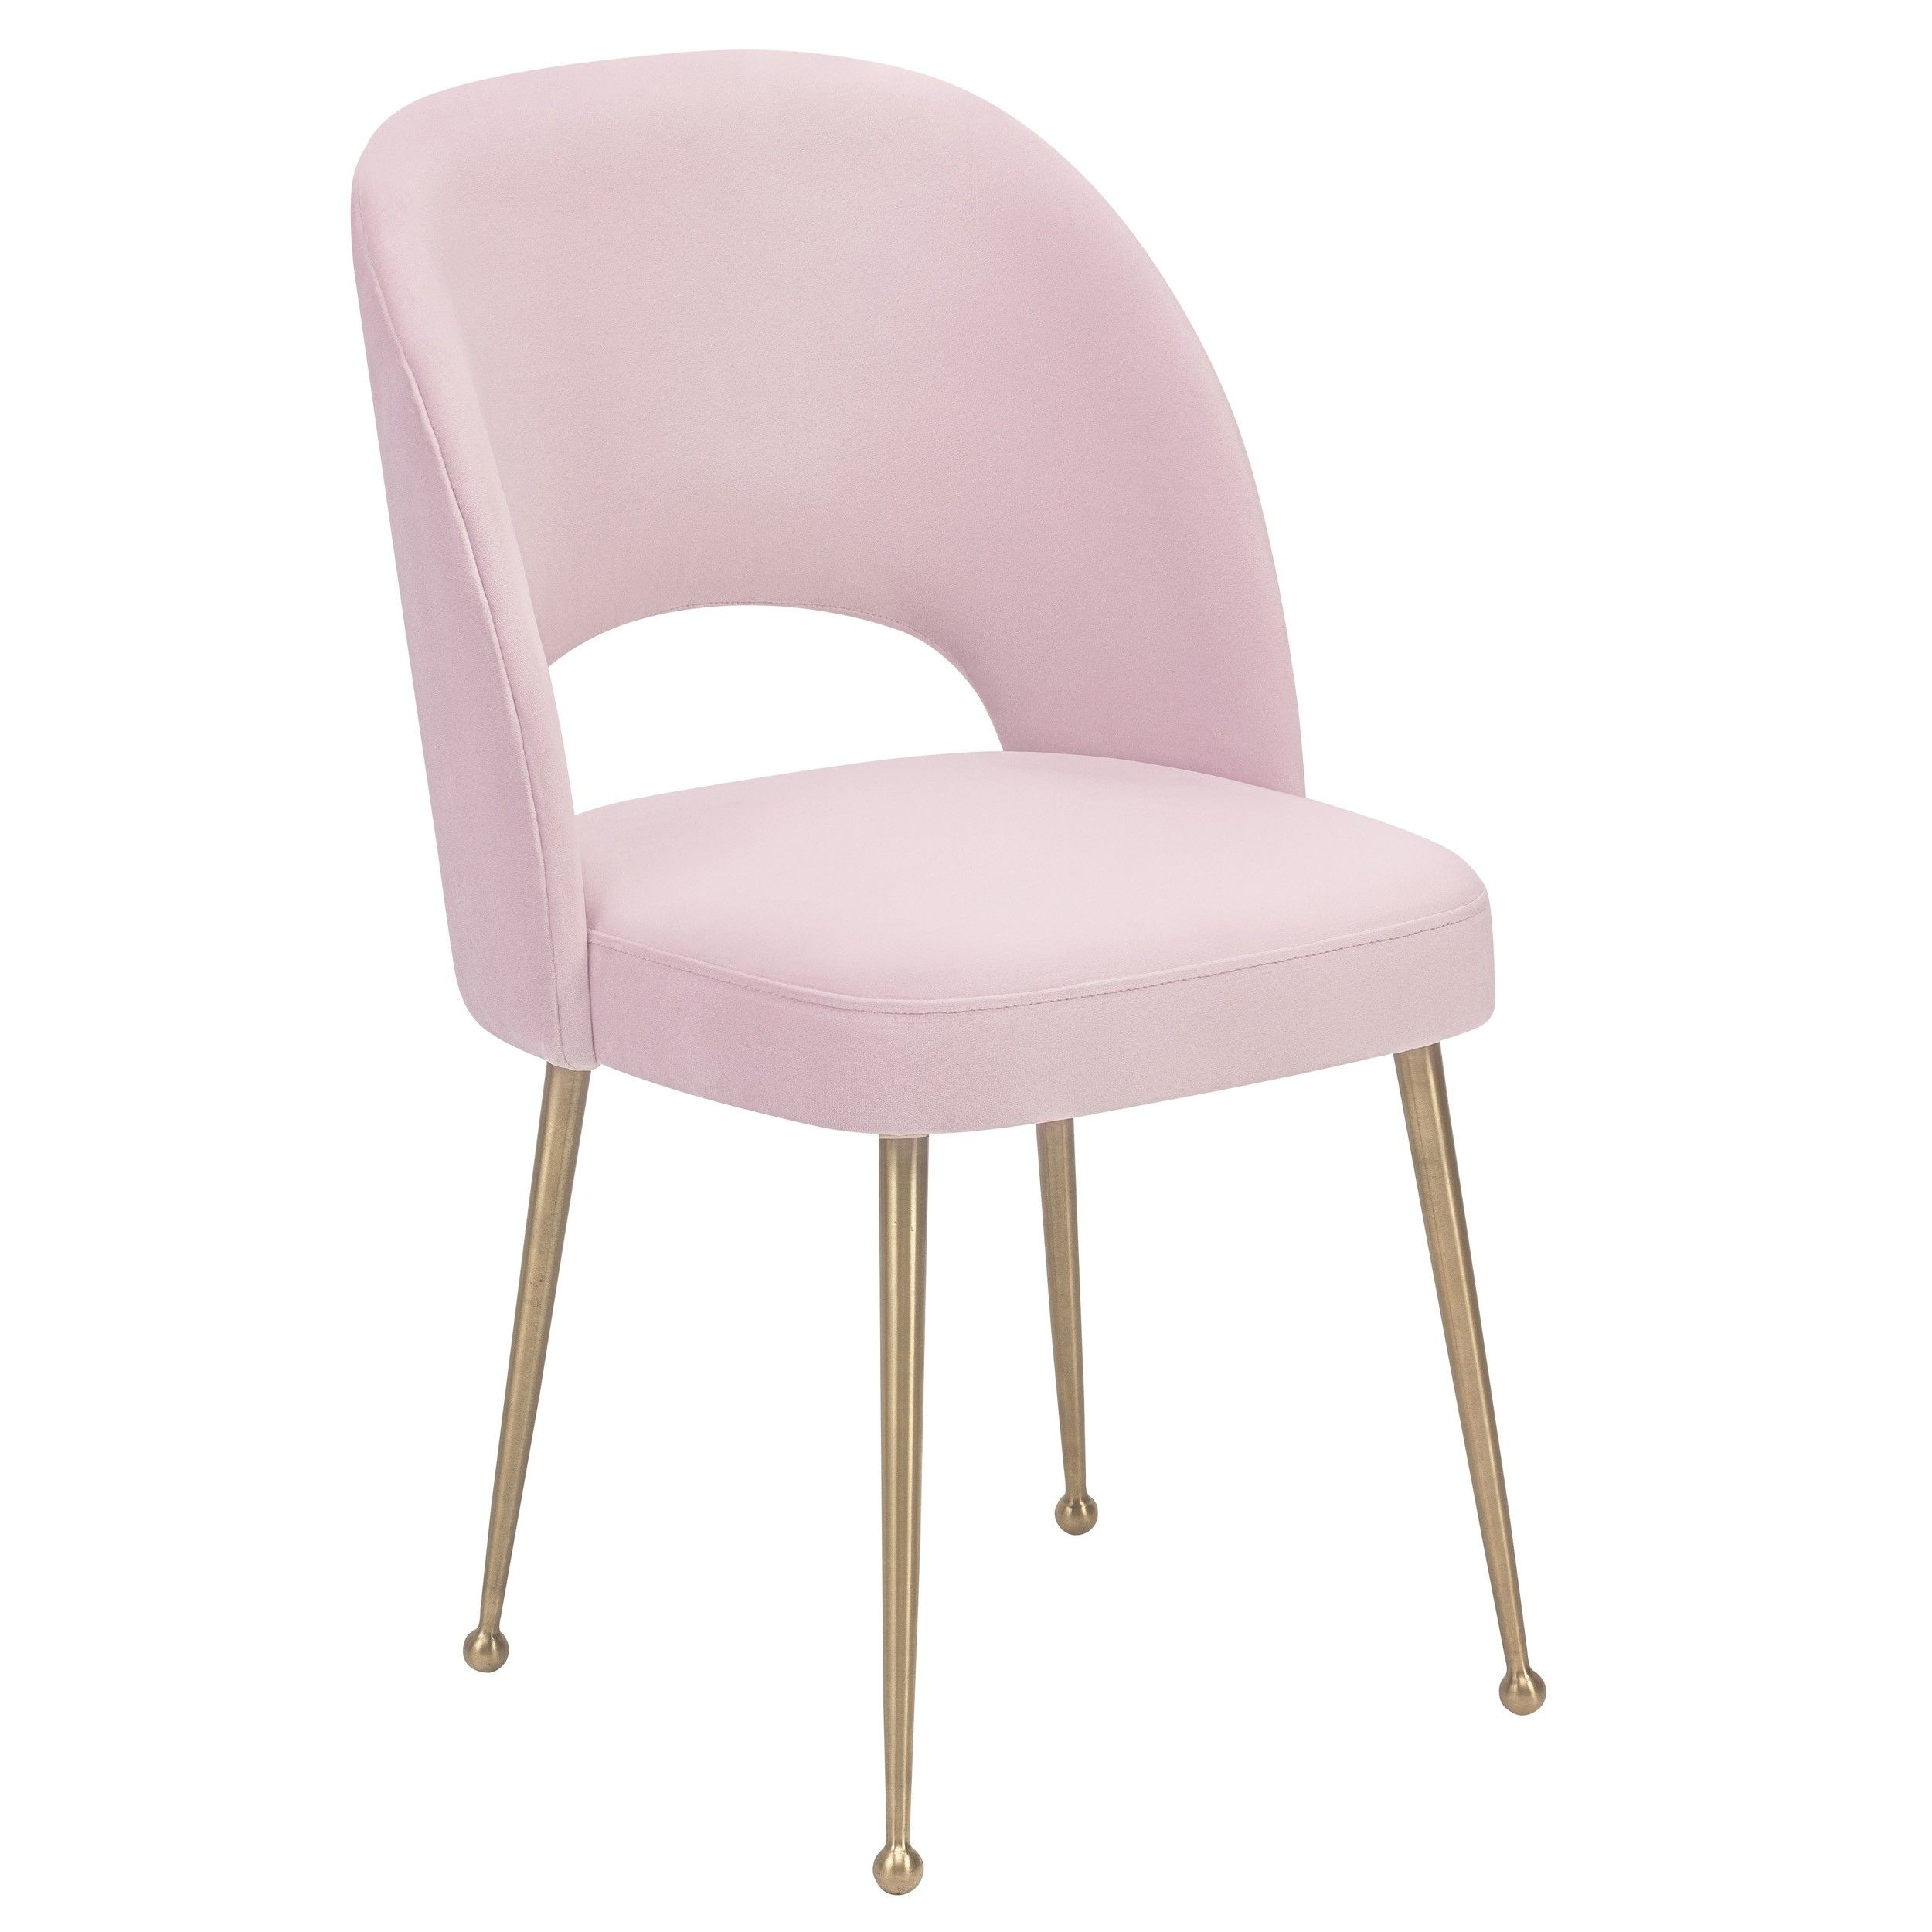 Swell Dining Chair